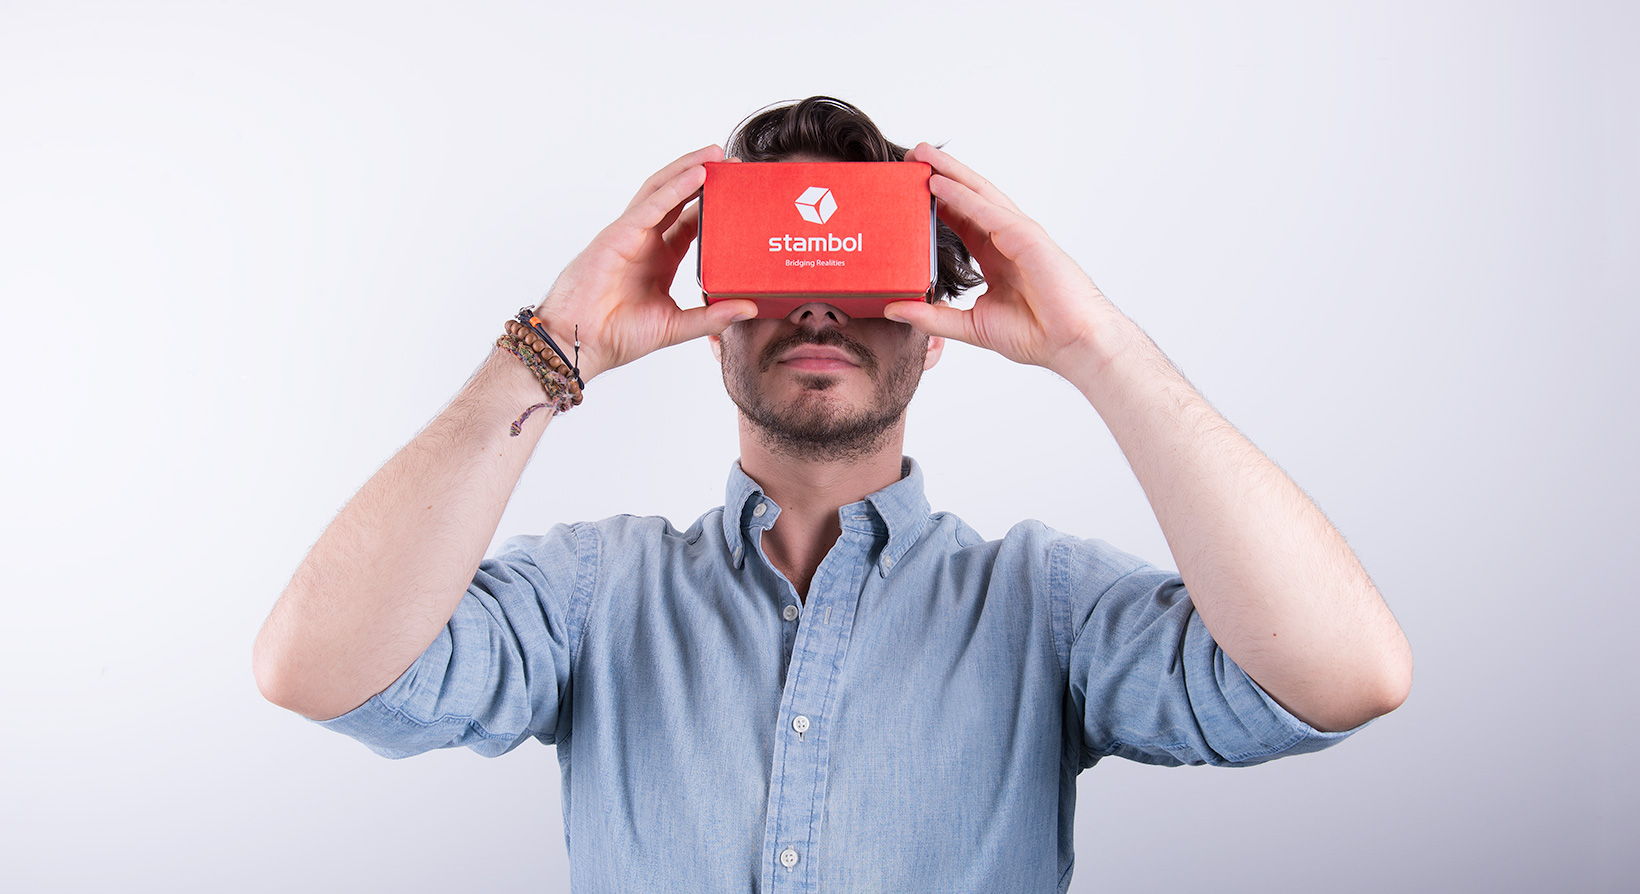 male model holding Google Cardboard with Stambol logo